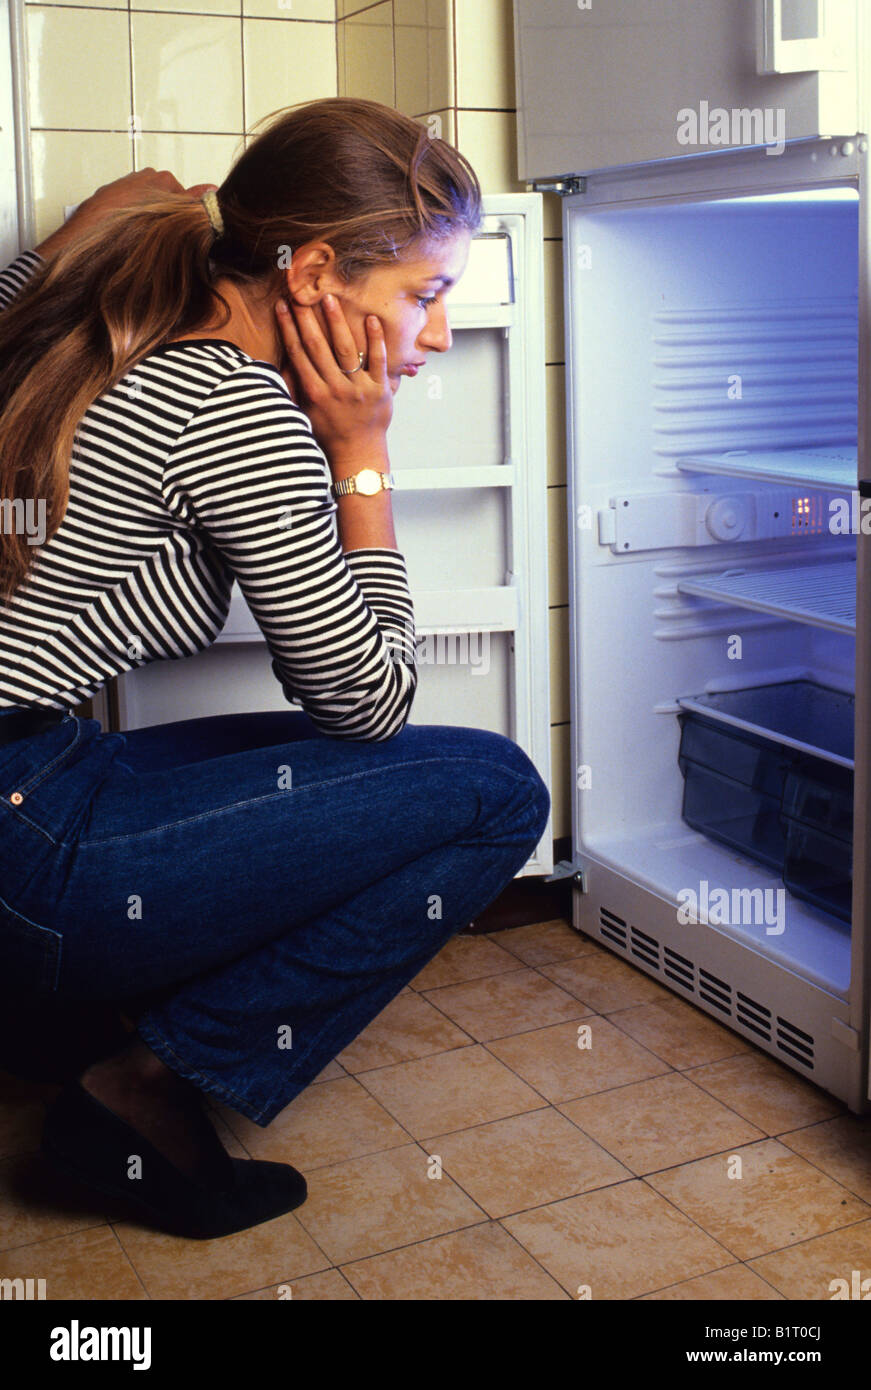 Woman looking into an empty fridge - Stock Image